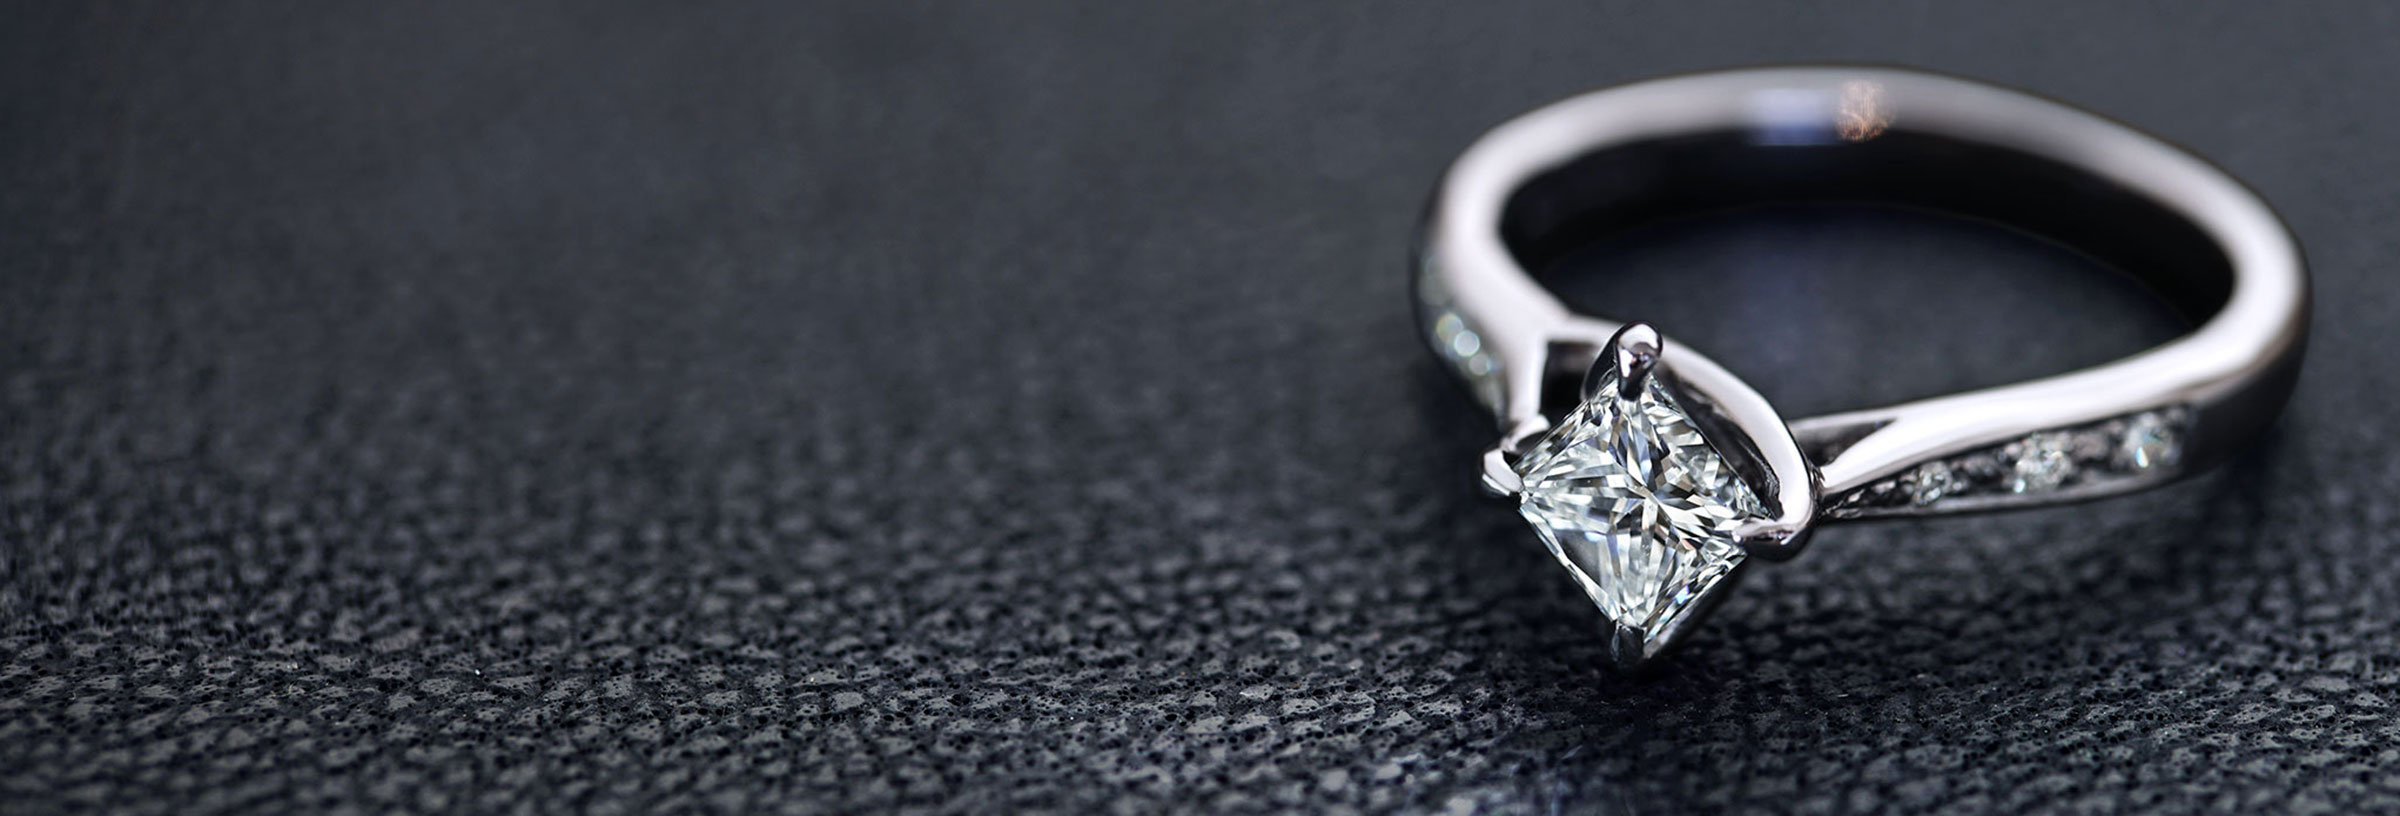 Princess-Cut-Diamond-and-Recycled-Platinum-Engagement-With-a-Twisted-Setting